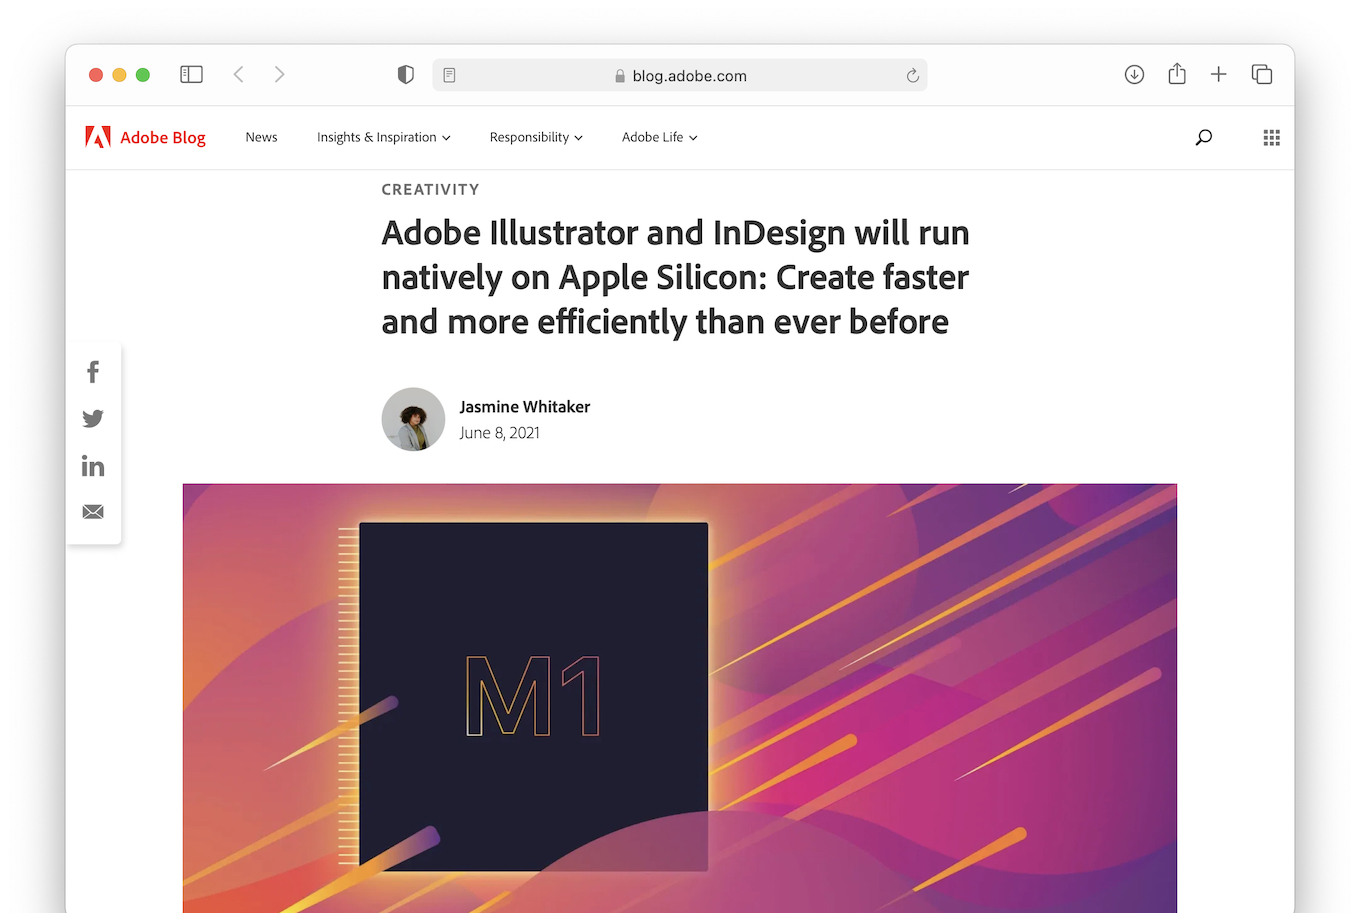 Adobe Illustrator and InDesign will run natively on Apple Silicon